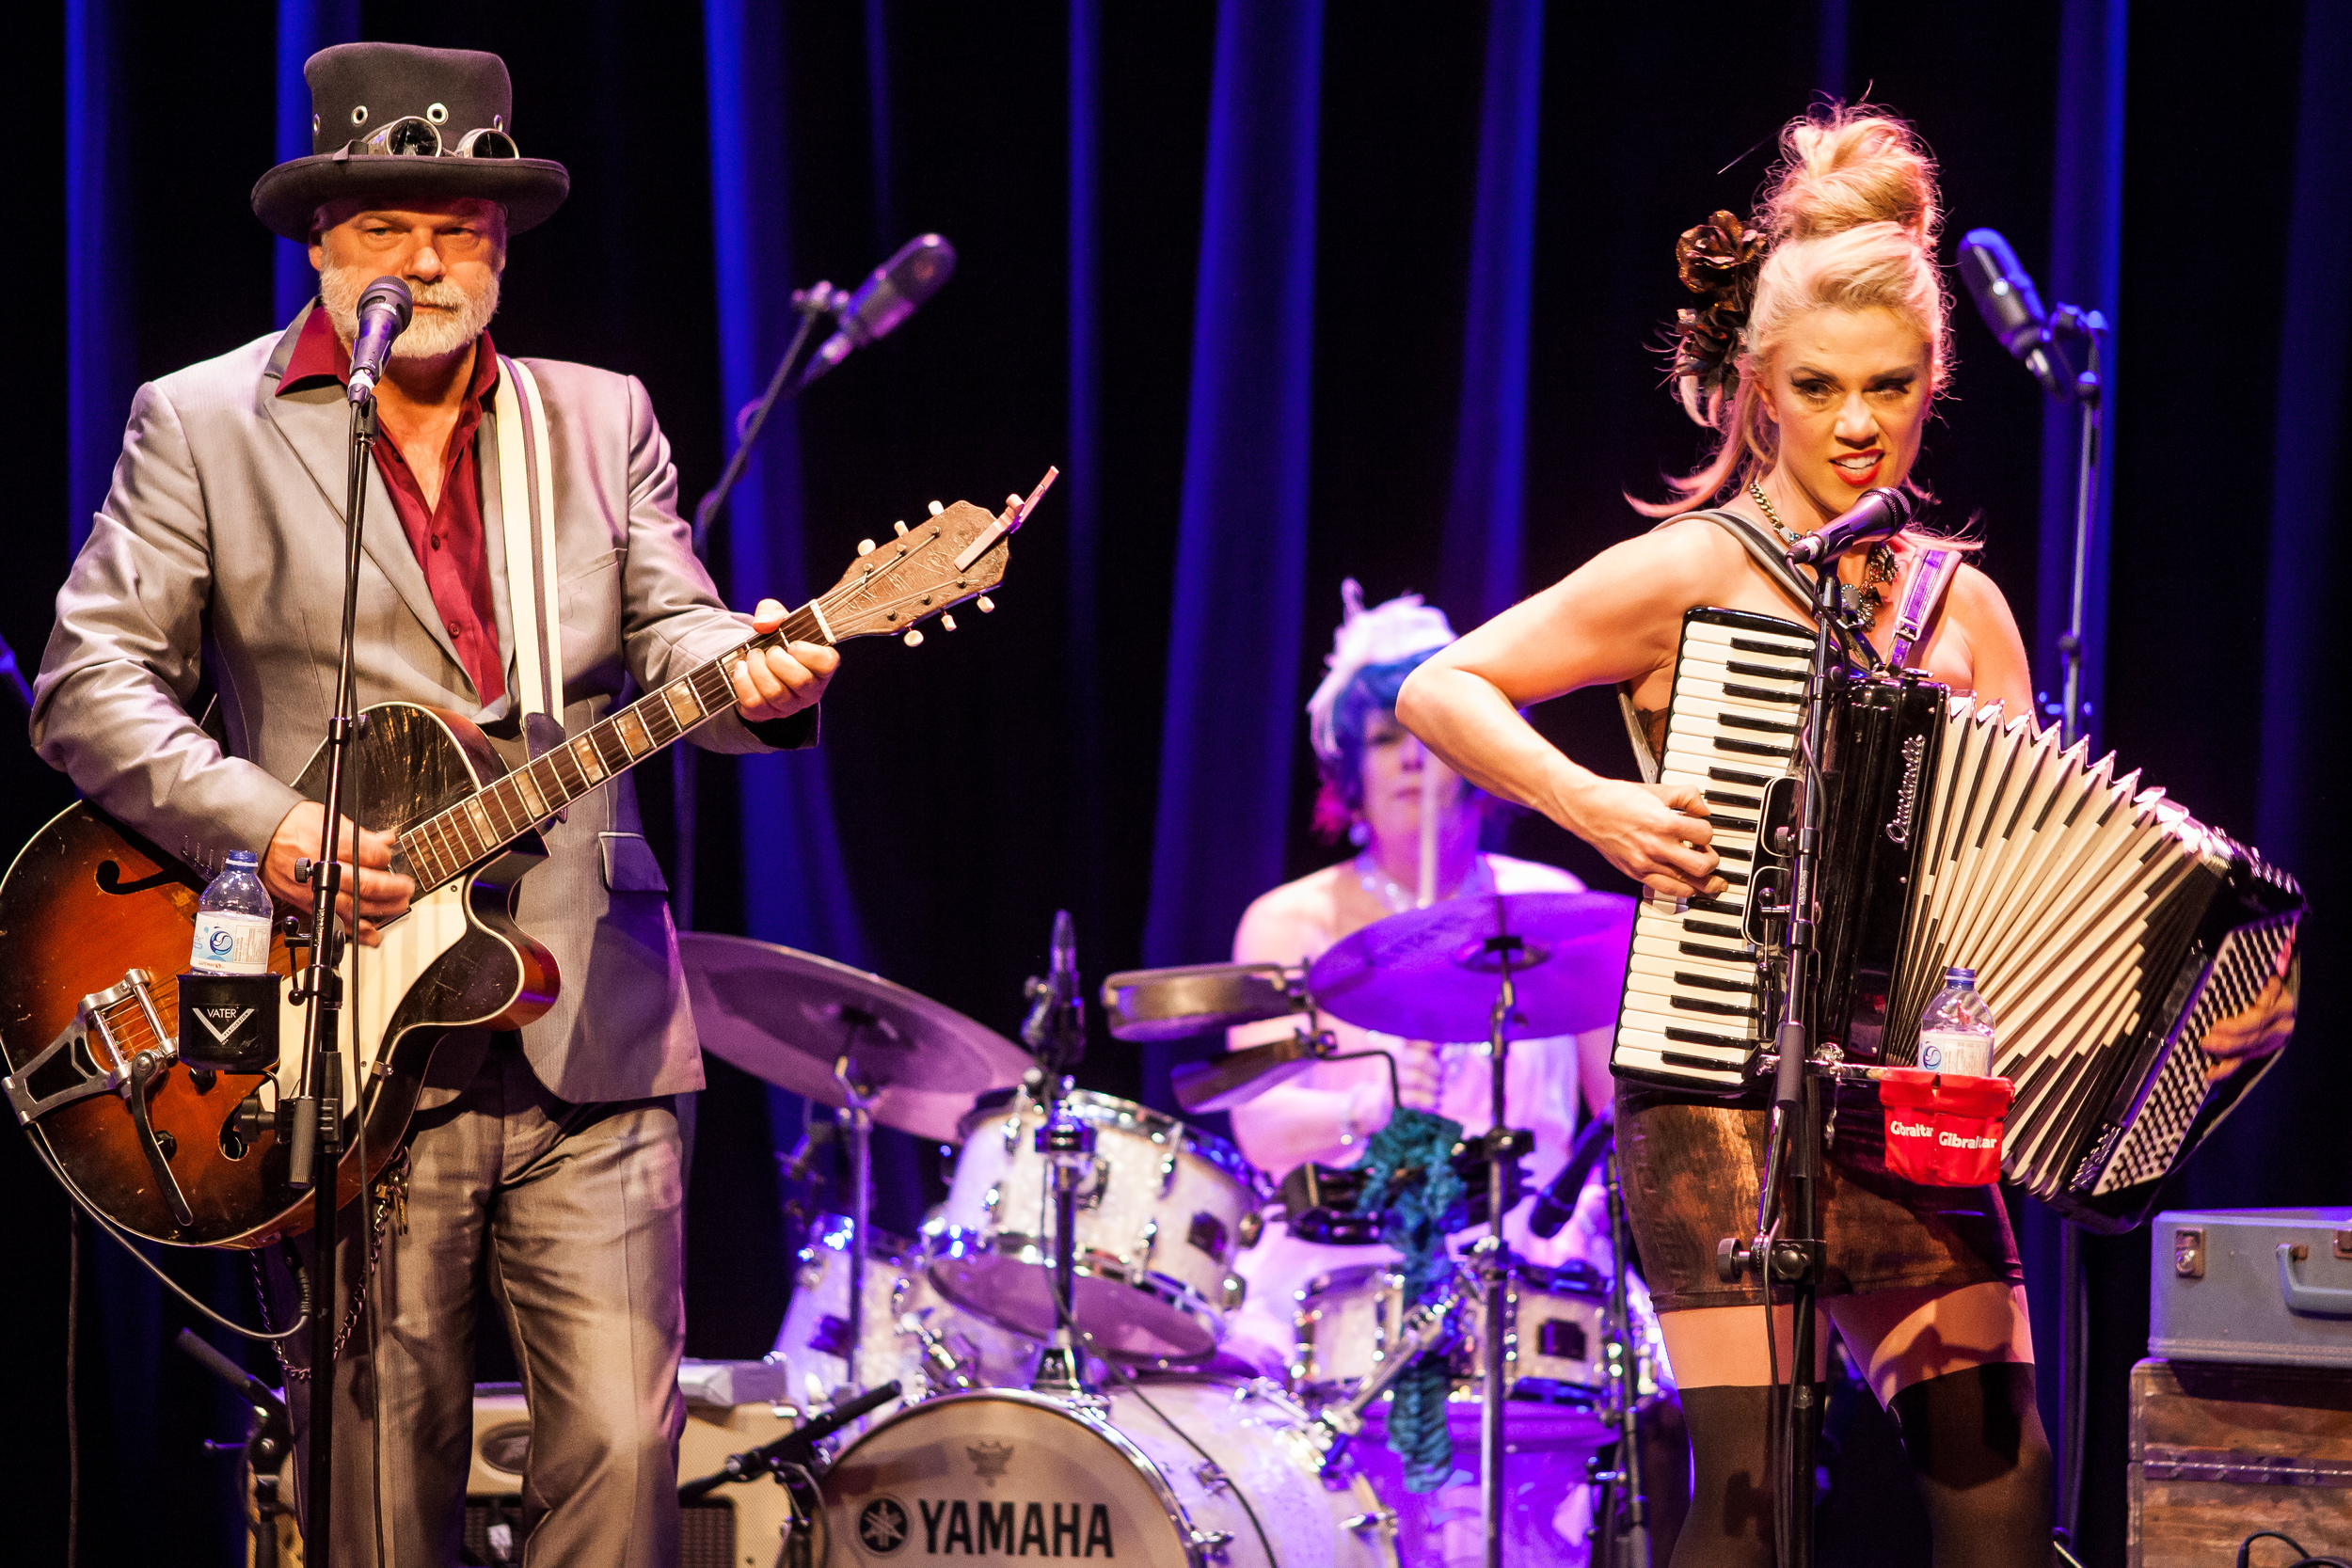 I'll admit, I had never heard Fred Eaglesmith prior to Exclaim! hiring me to shoot his show at the Park Theatre. My friend and fellow Exclaim! contributor Sheldon assured me that we were in for a good time. Eaglesmith's merry band of pranksters are like a psychedelic roadshow that set out on the open road sometime in the 60's and still haven't run out of gas.